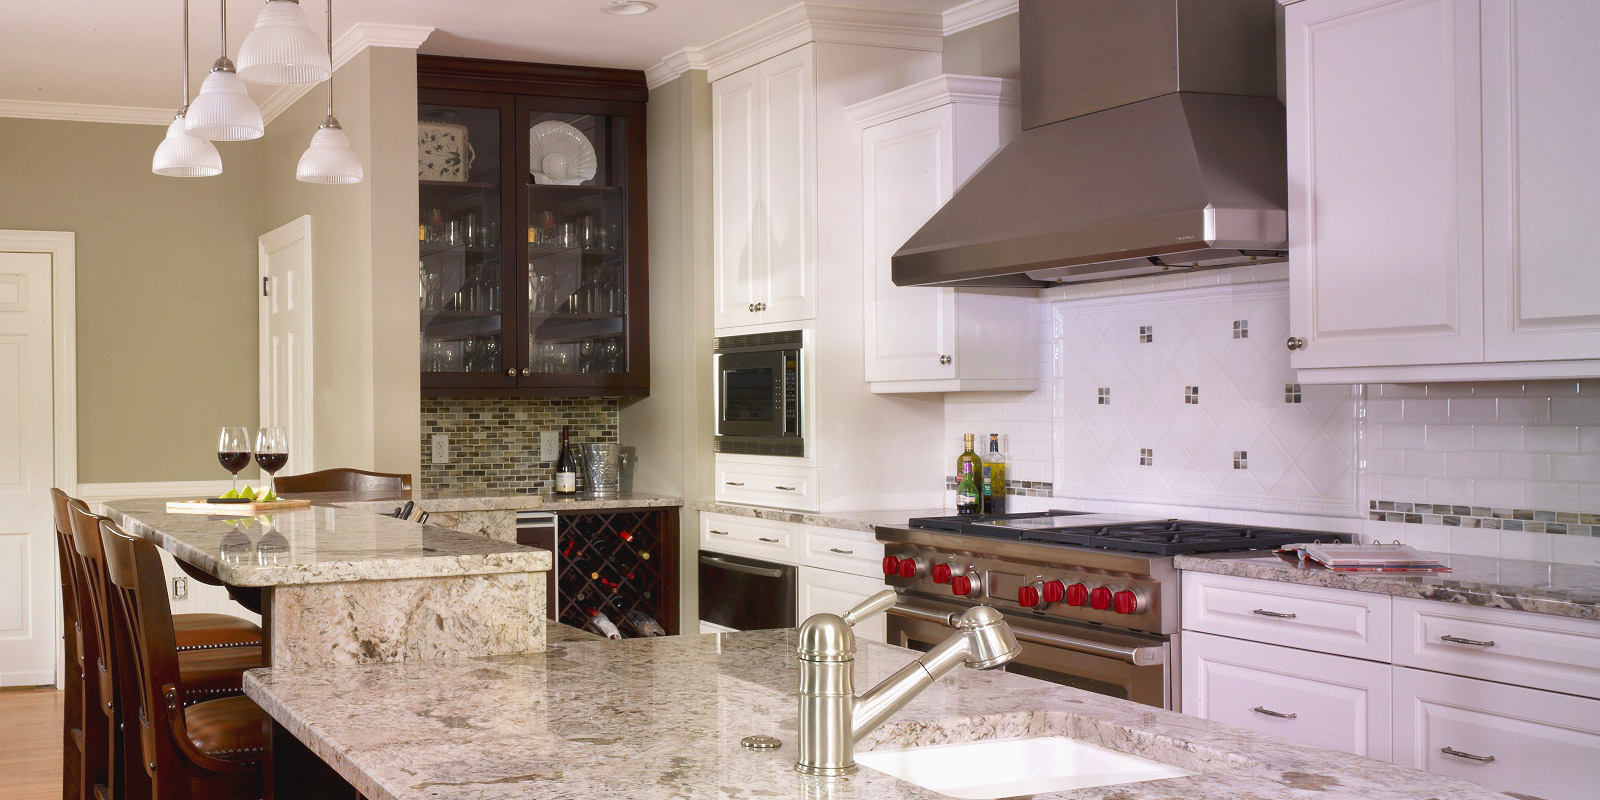 The Kitchen Specialist Custom Cabinet Showroom Serving Durham Chapel Hill Raleigh All Of North Carolina And Beyond